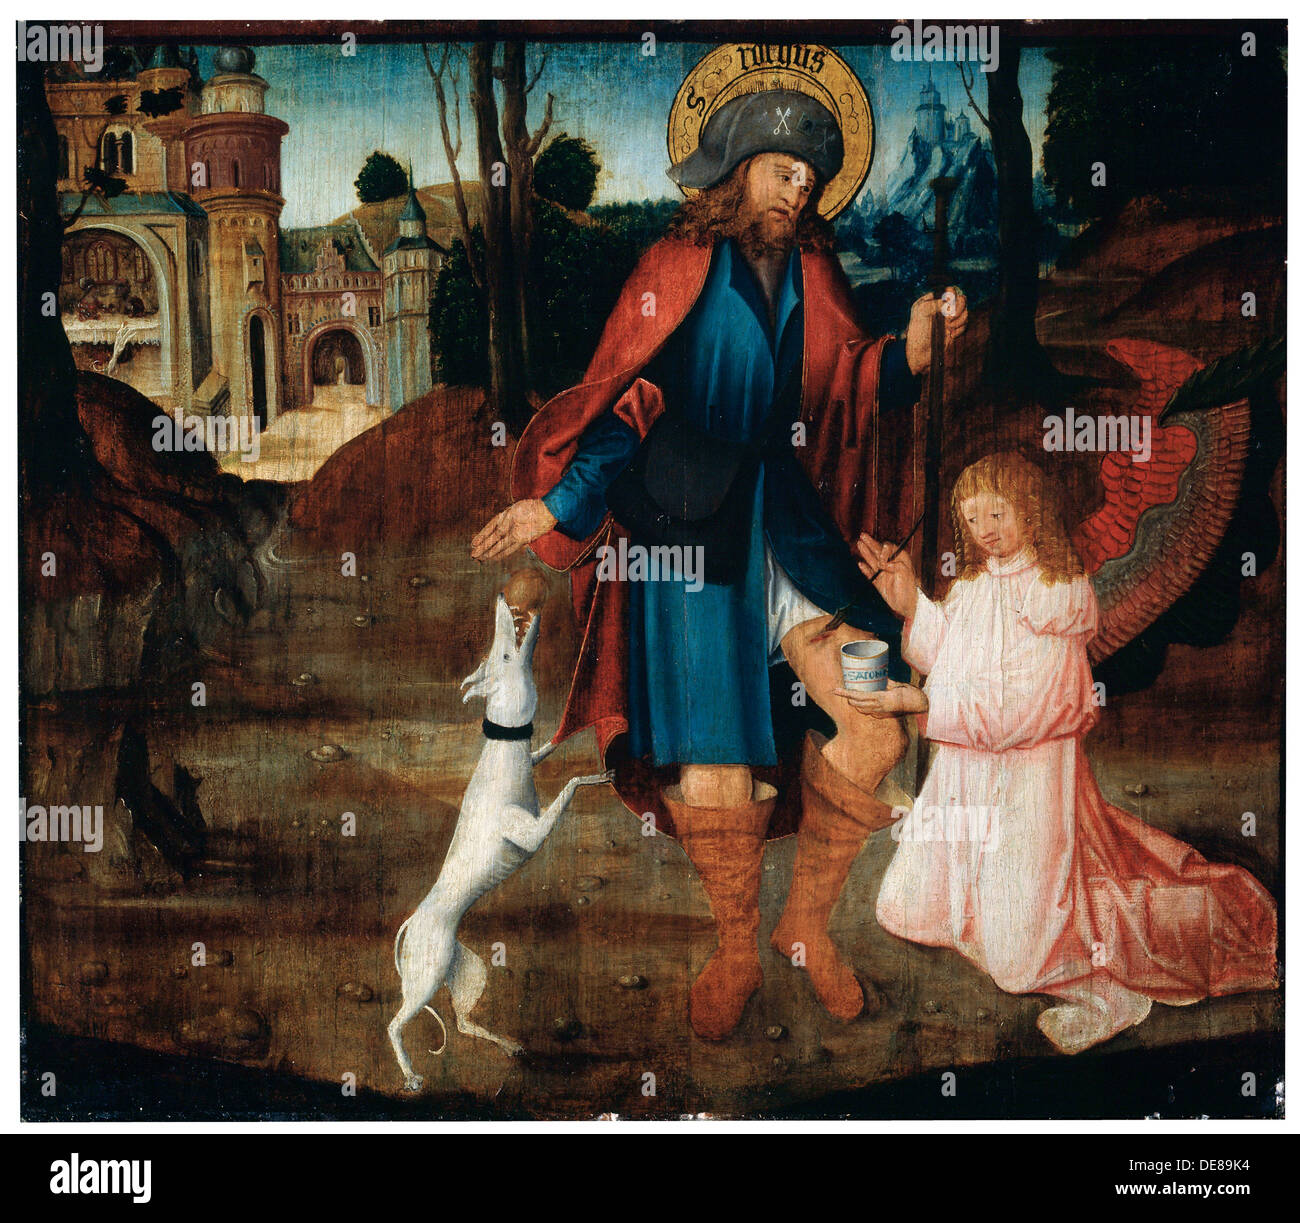 'The Healing of Saint Roch', late 15th century. Artist: German Master - Stock Image